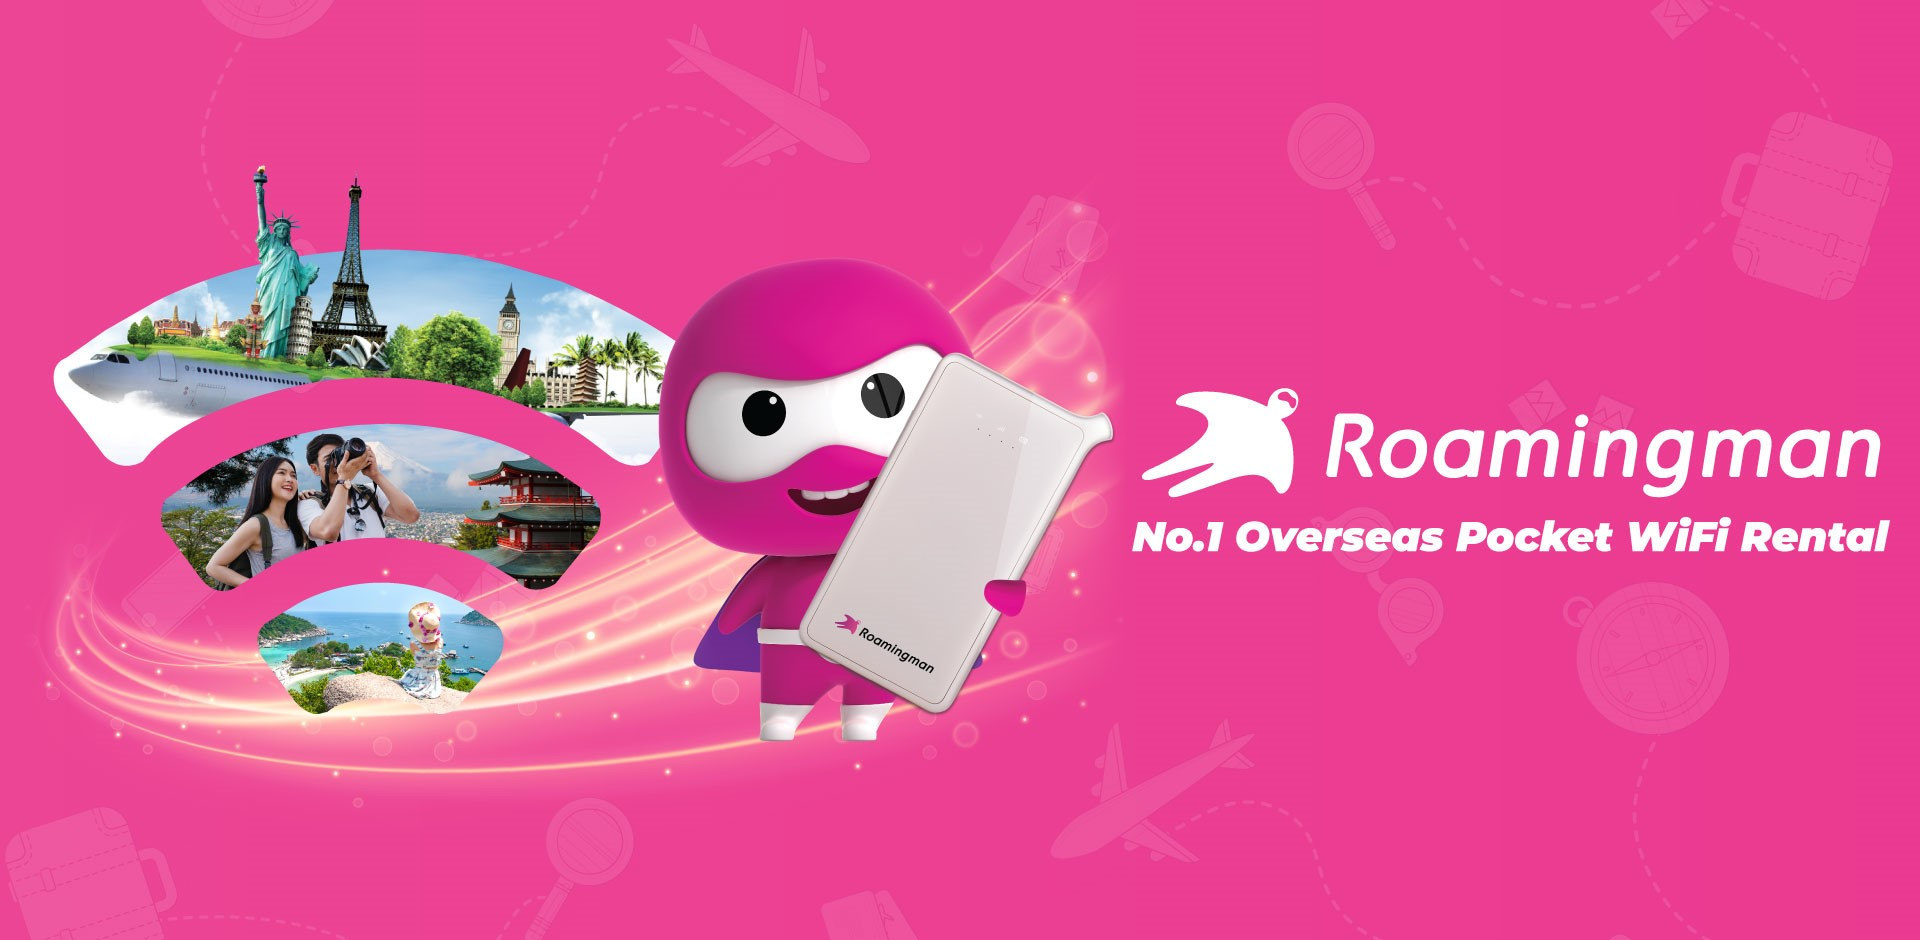 No.1 Overseas Pocket Wifi